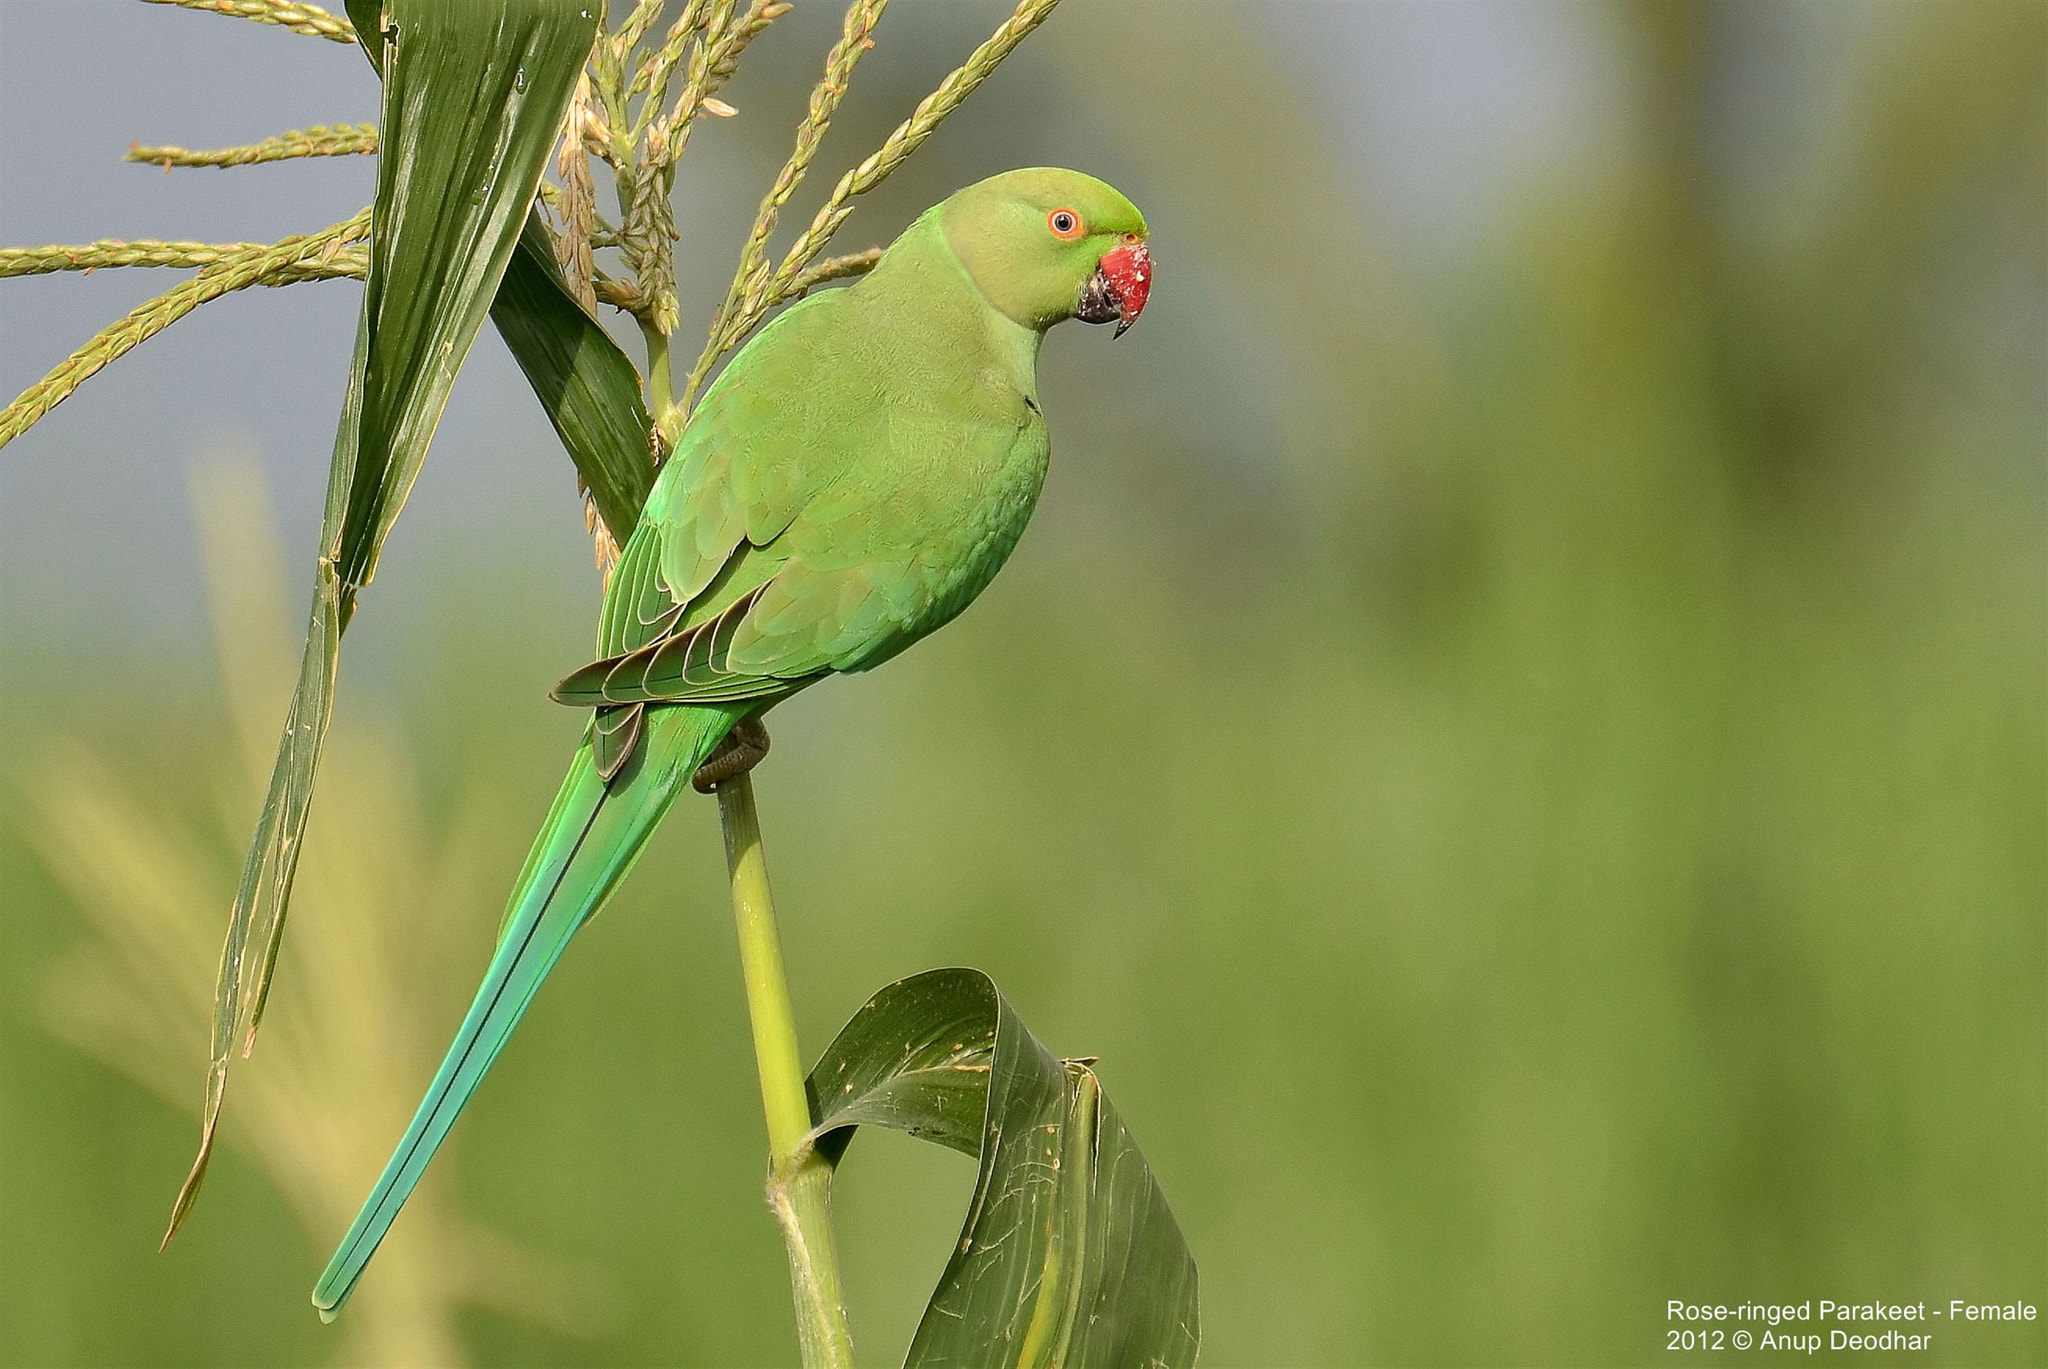 Photograph Rose-ringed Parakeet - Female by Anup Deodhar on 500px